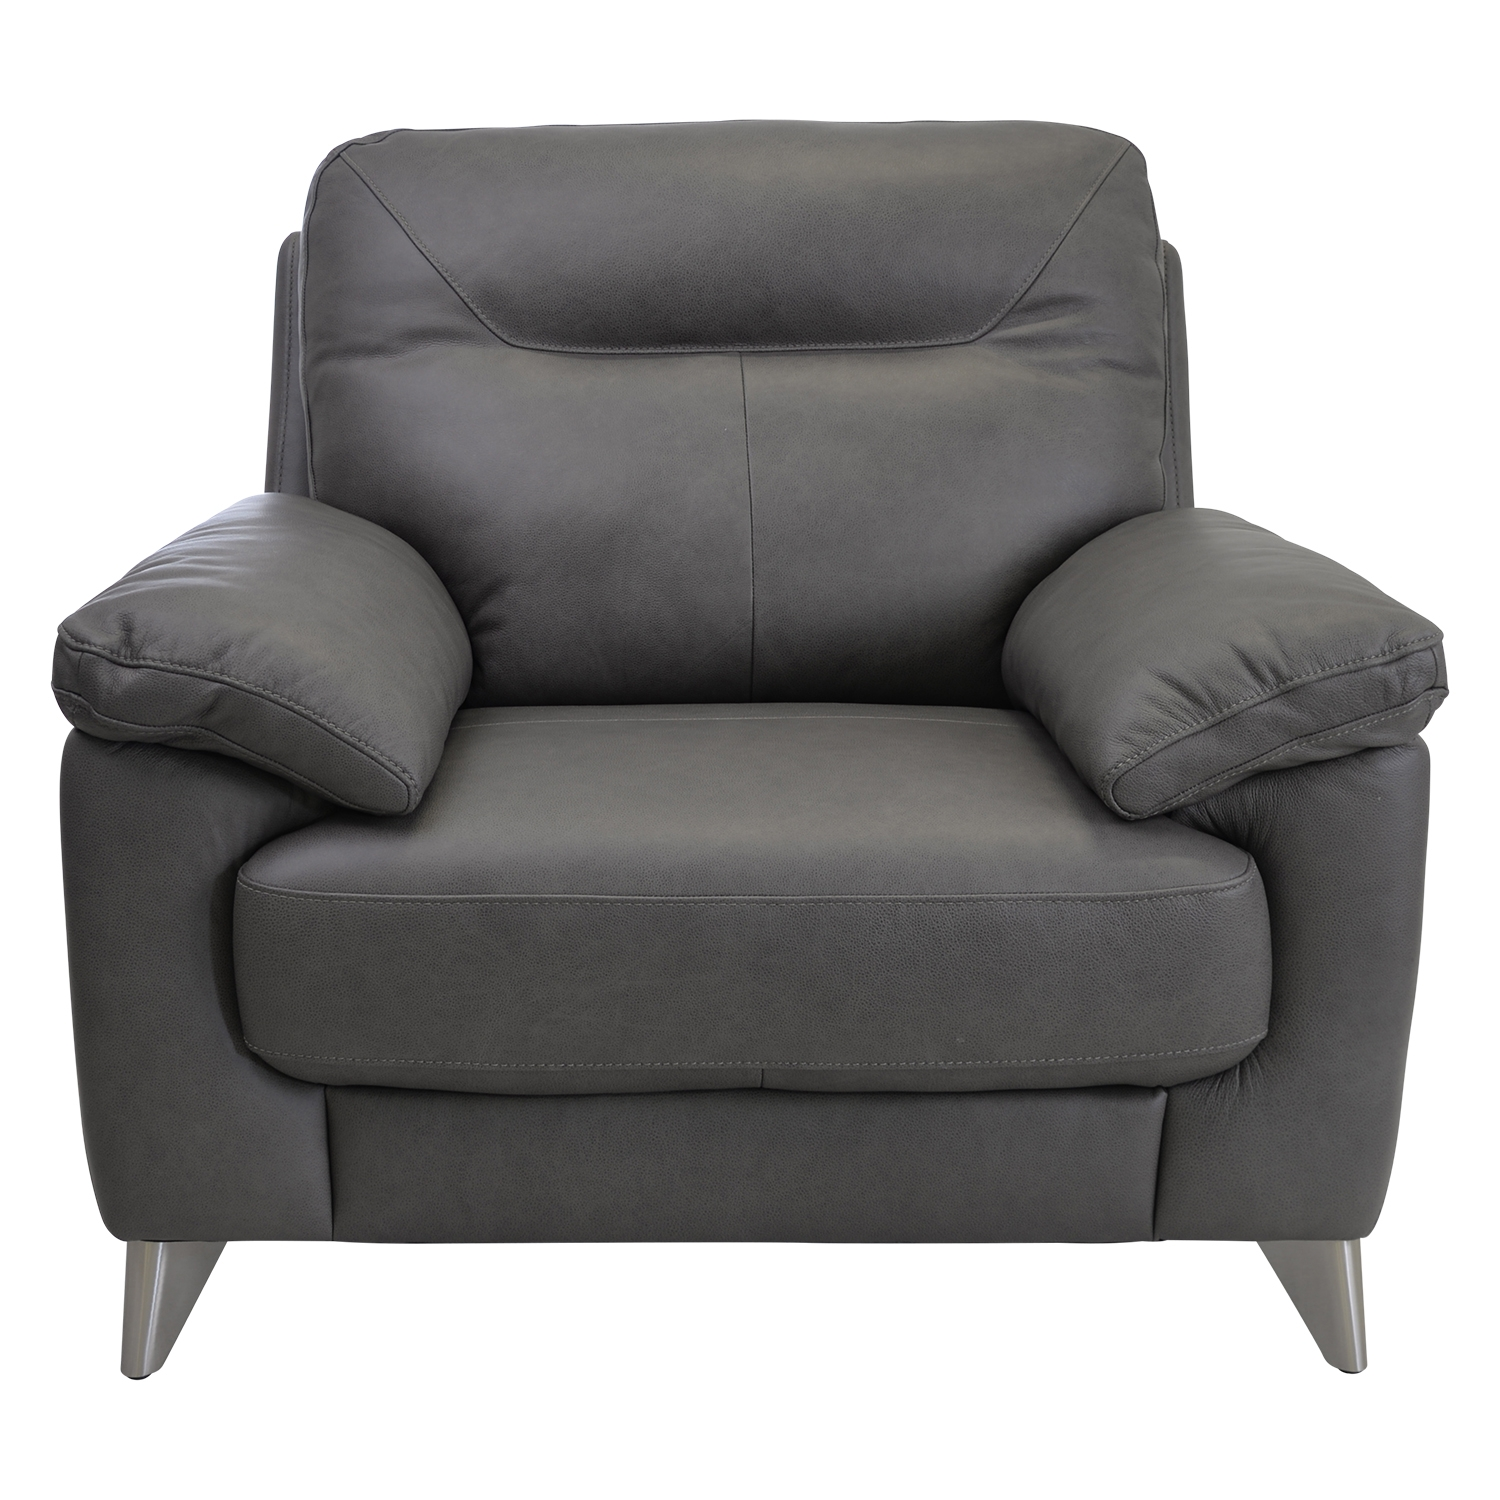 Image of Casa Maya Leather Chair, Rangers Charcoal